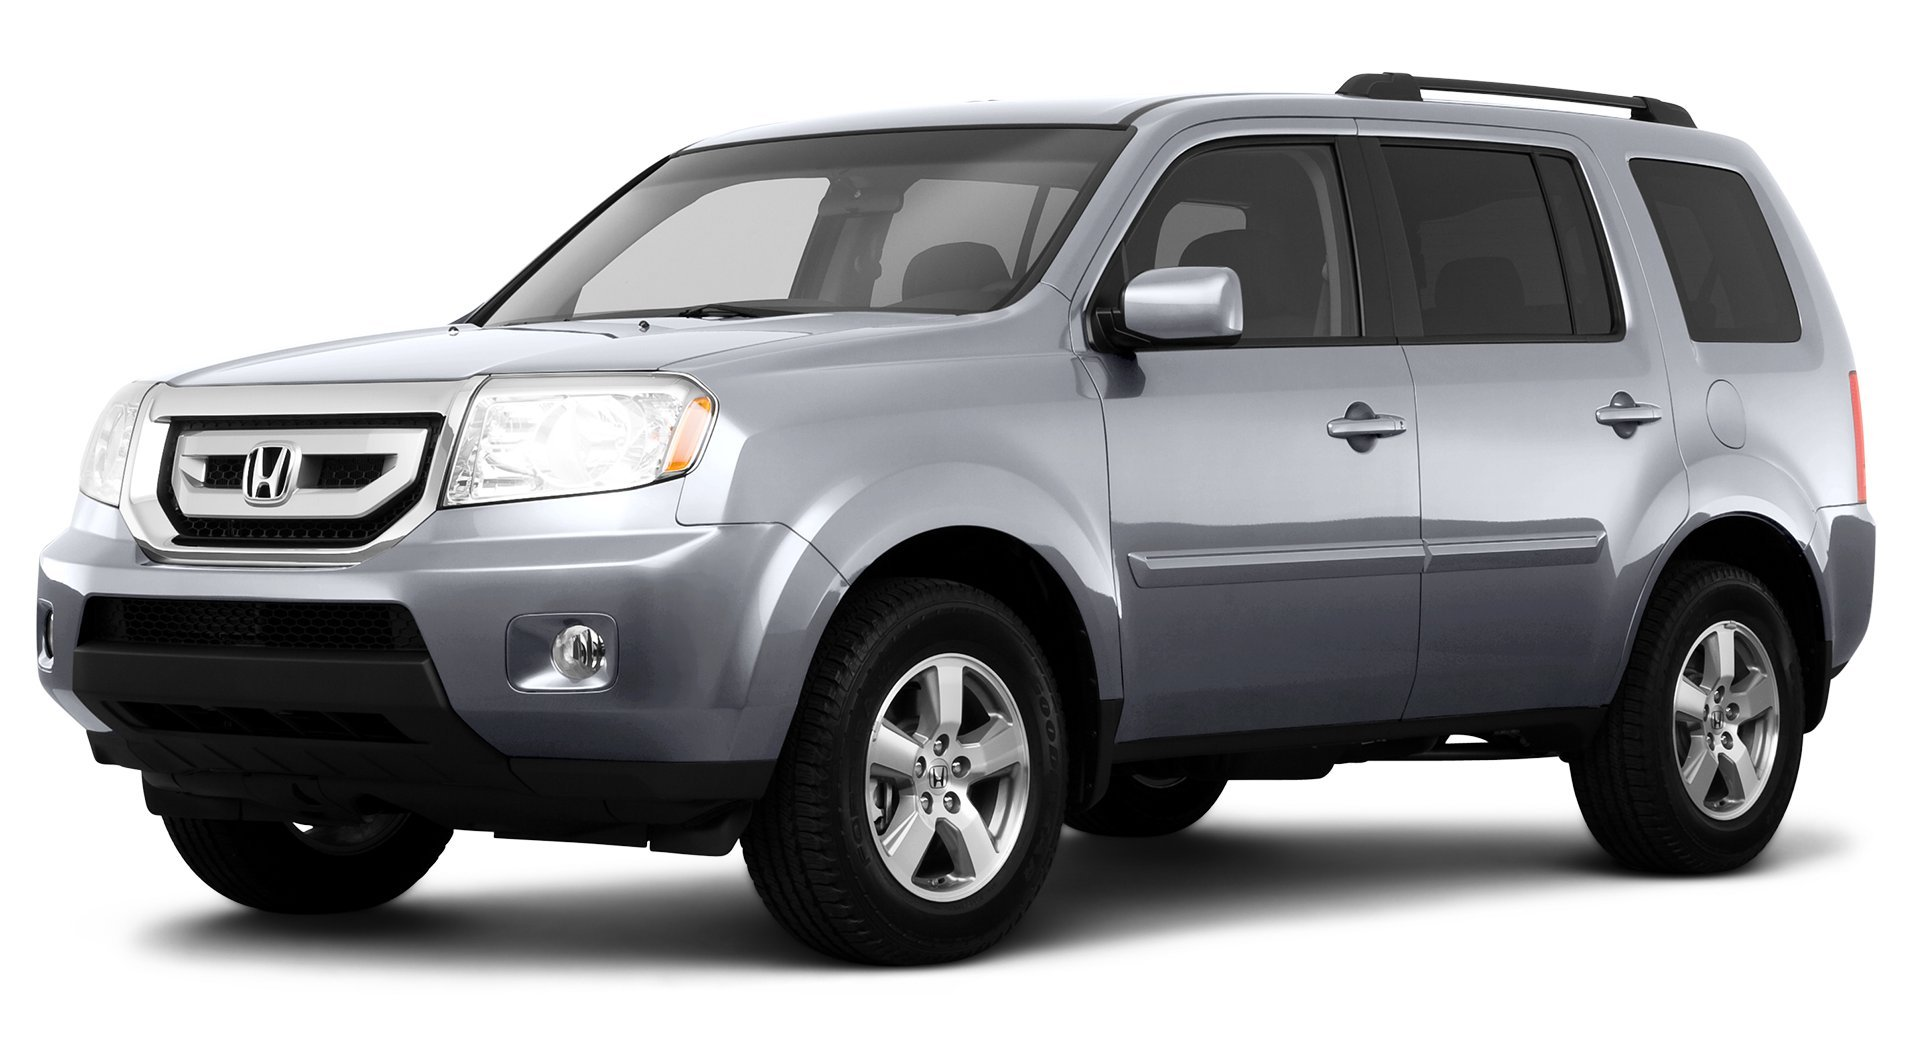 2010 honda pilot reviews images and specs vehicles. Black Bedroom Furniture Sets. Home Design Ideas